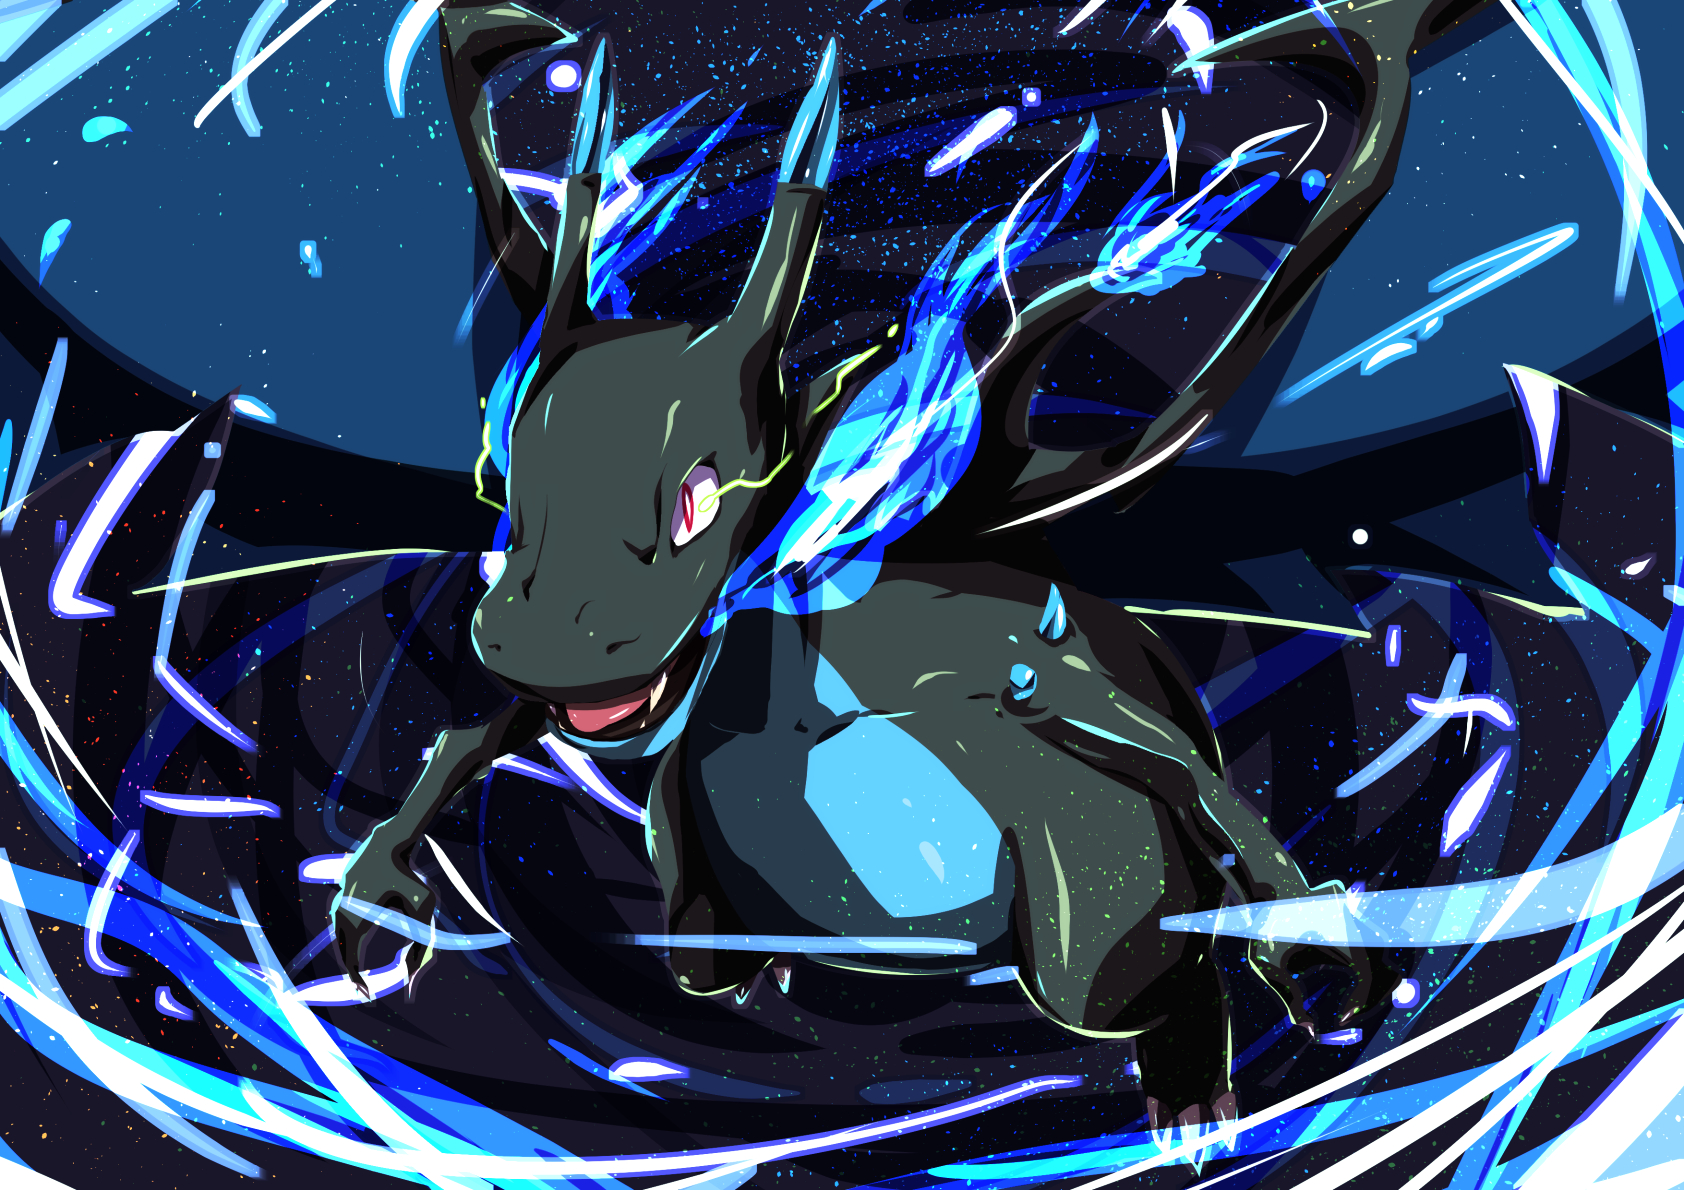 charizard images